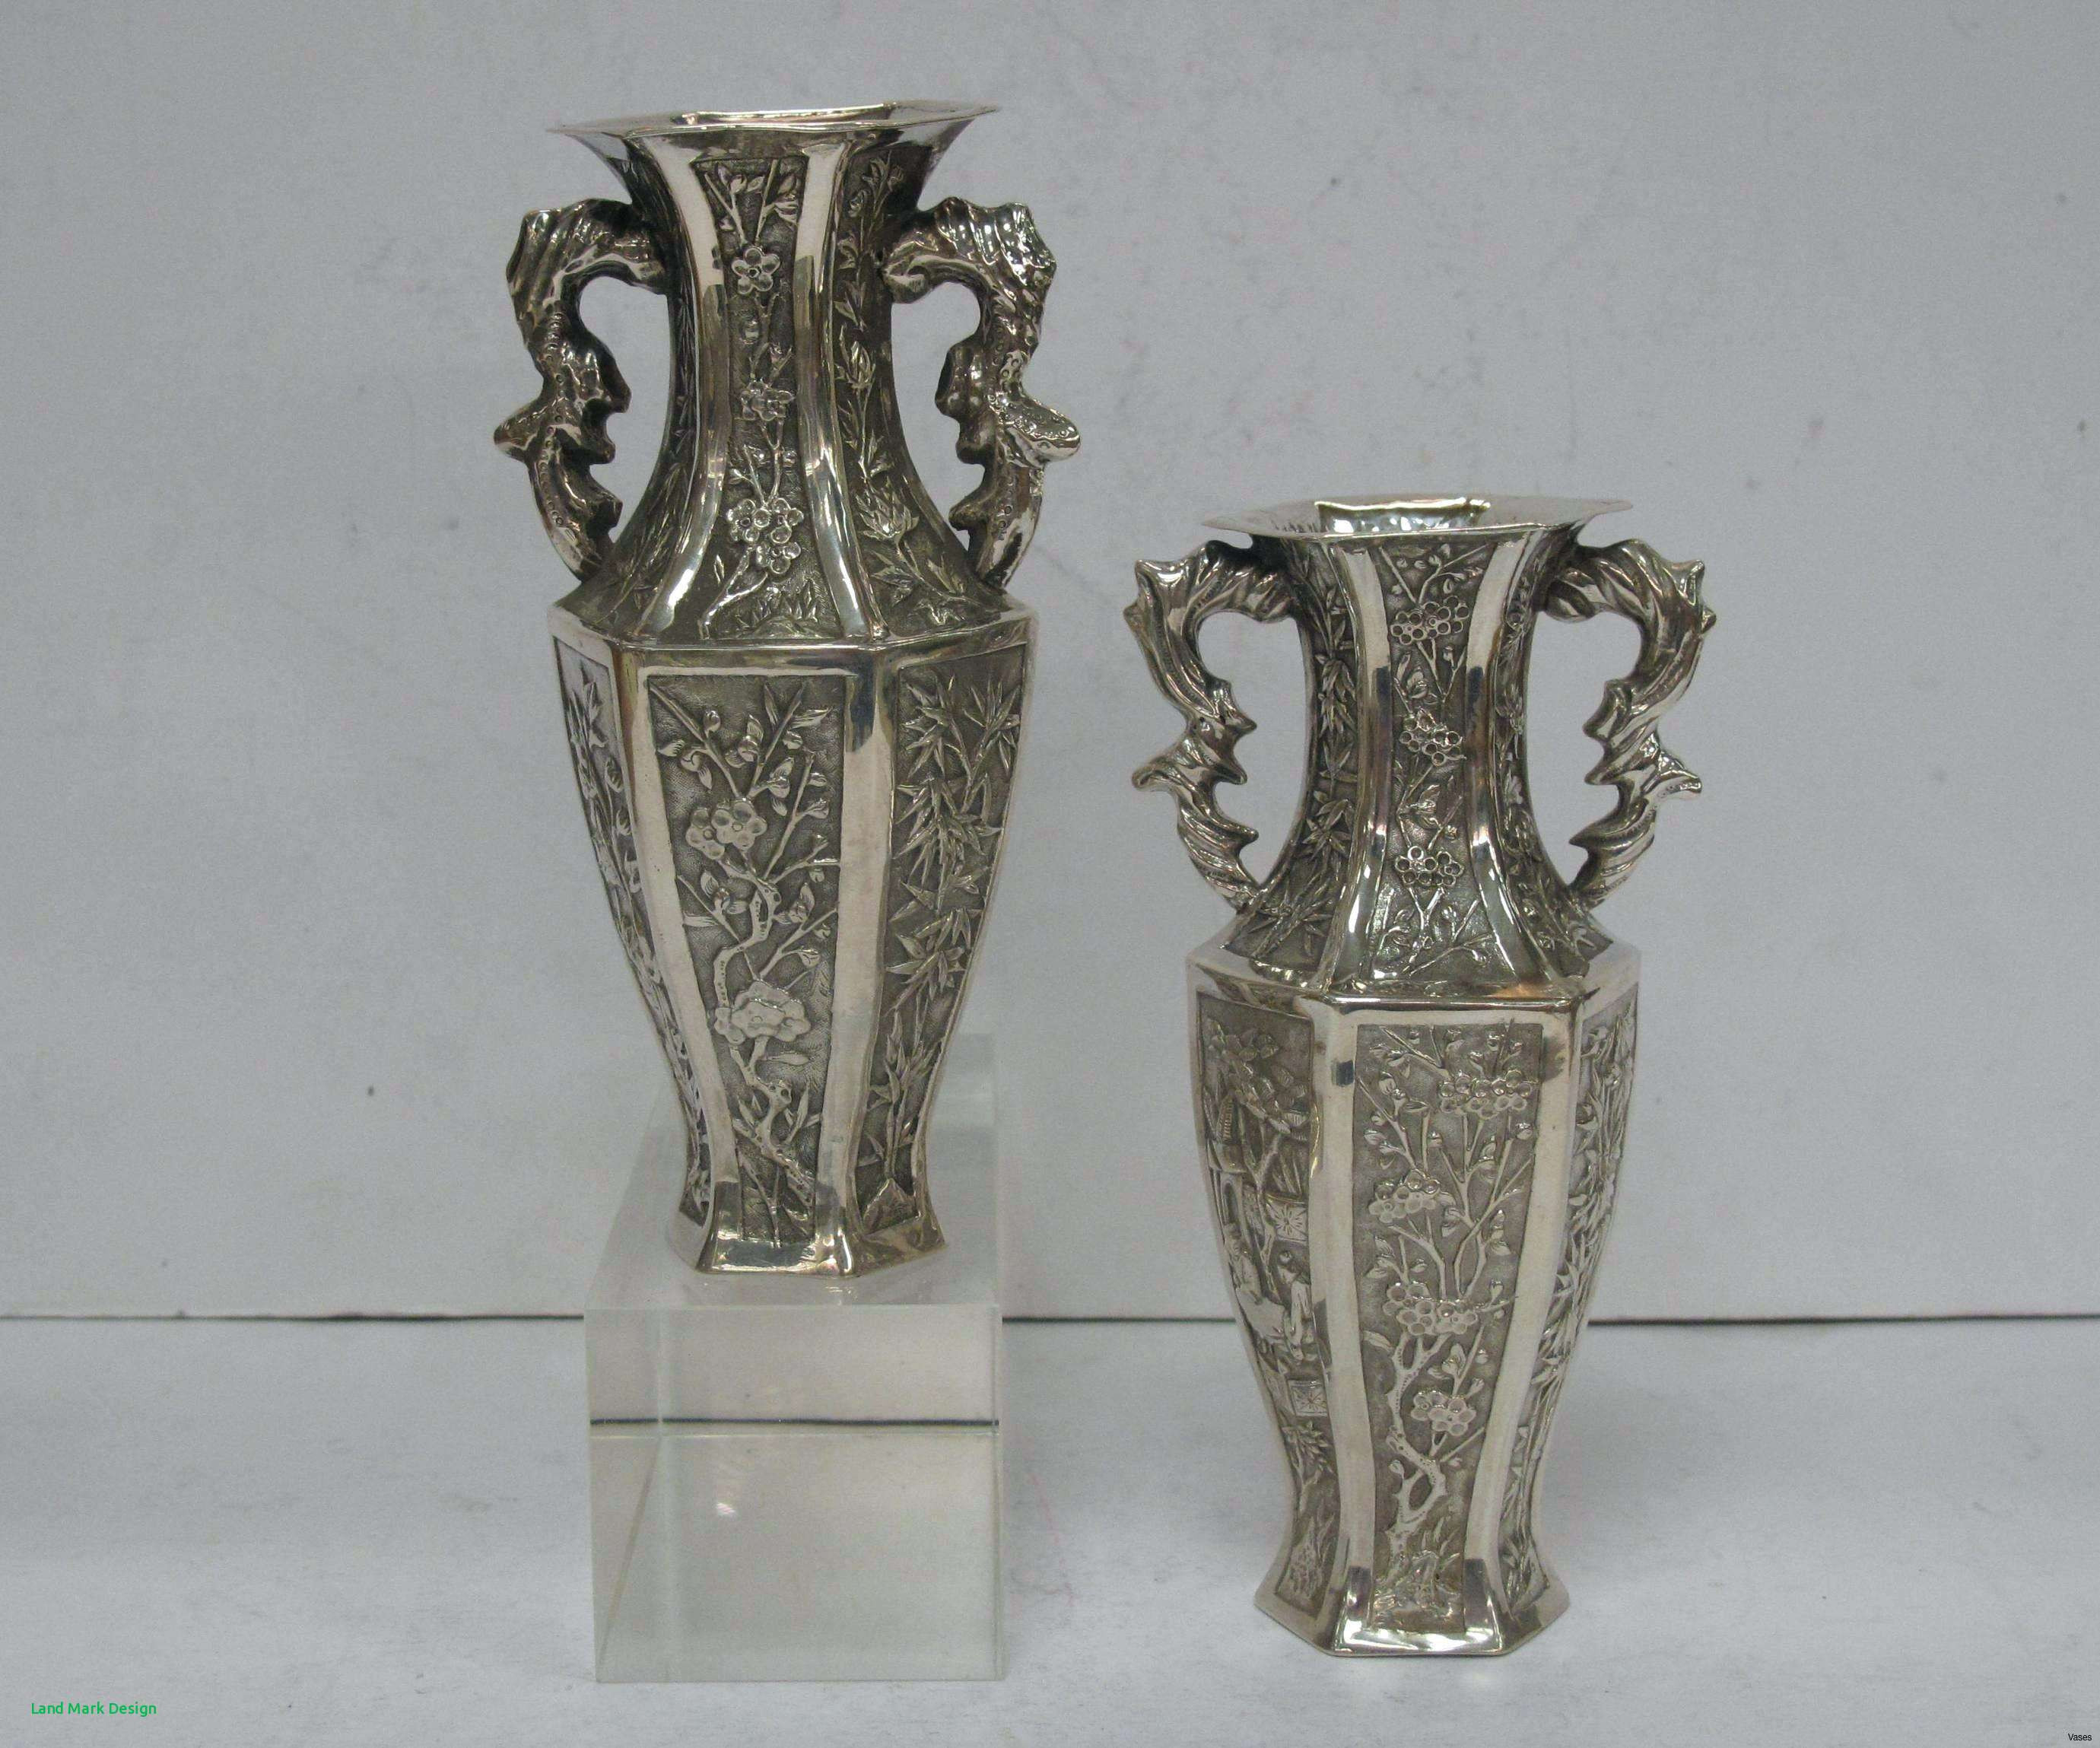 6 square vases in bulk of 15 best of square vases in bulk bogekompresorturkiye com with regard to 8253h vases bulk silver square glass cube vase with metallic band 6x6i 0d vases bulk silver